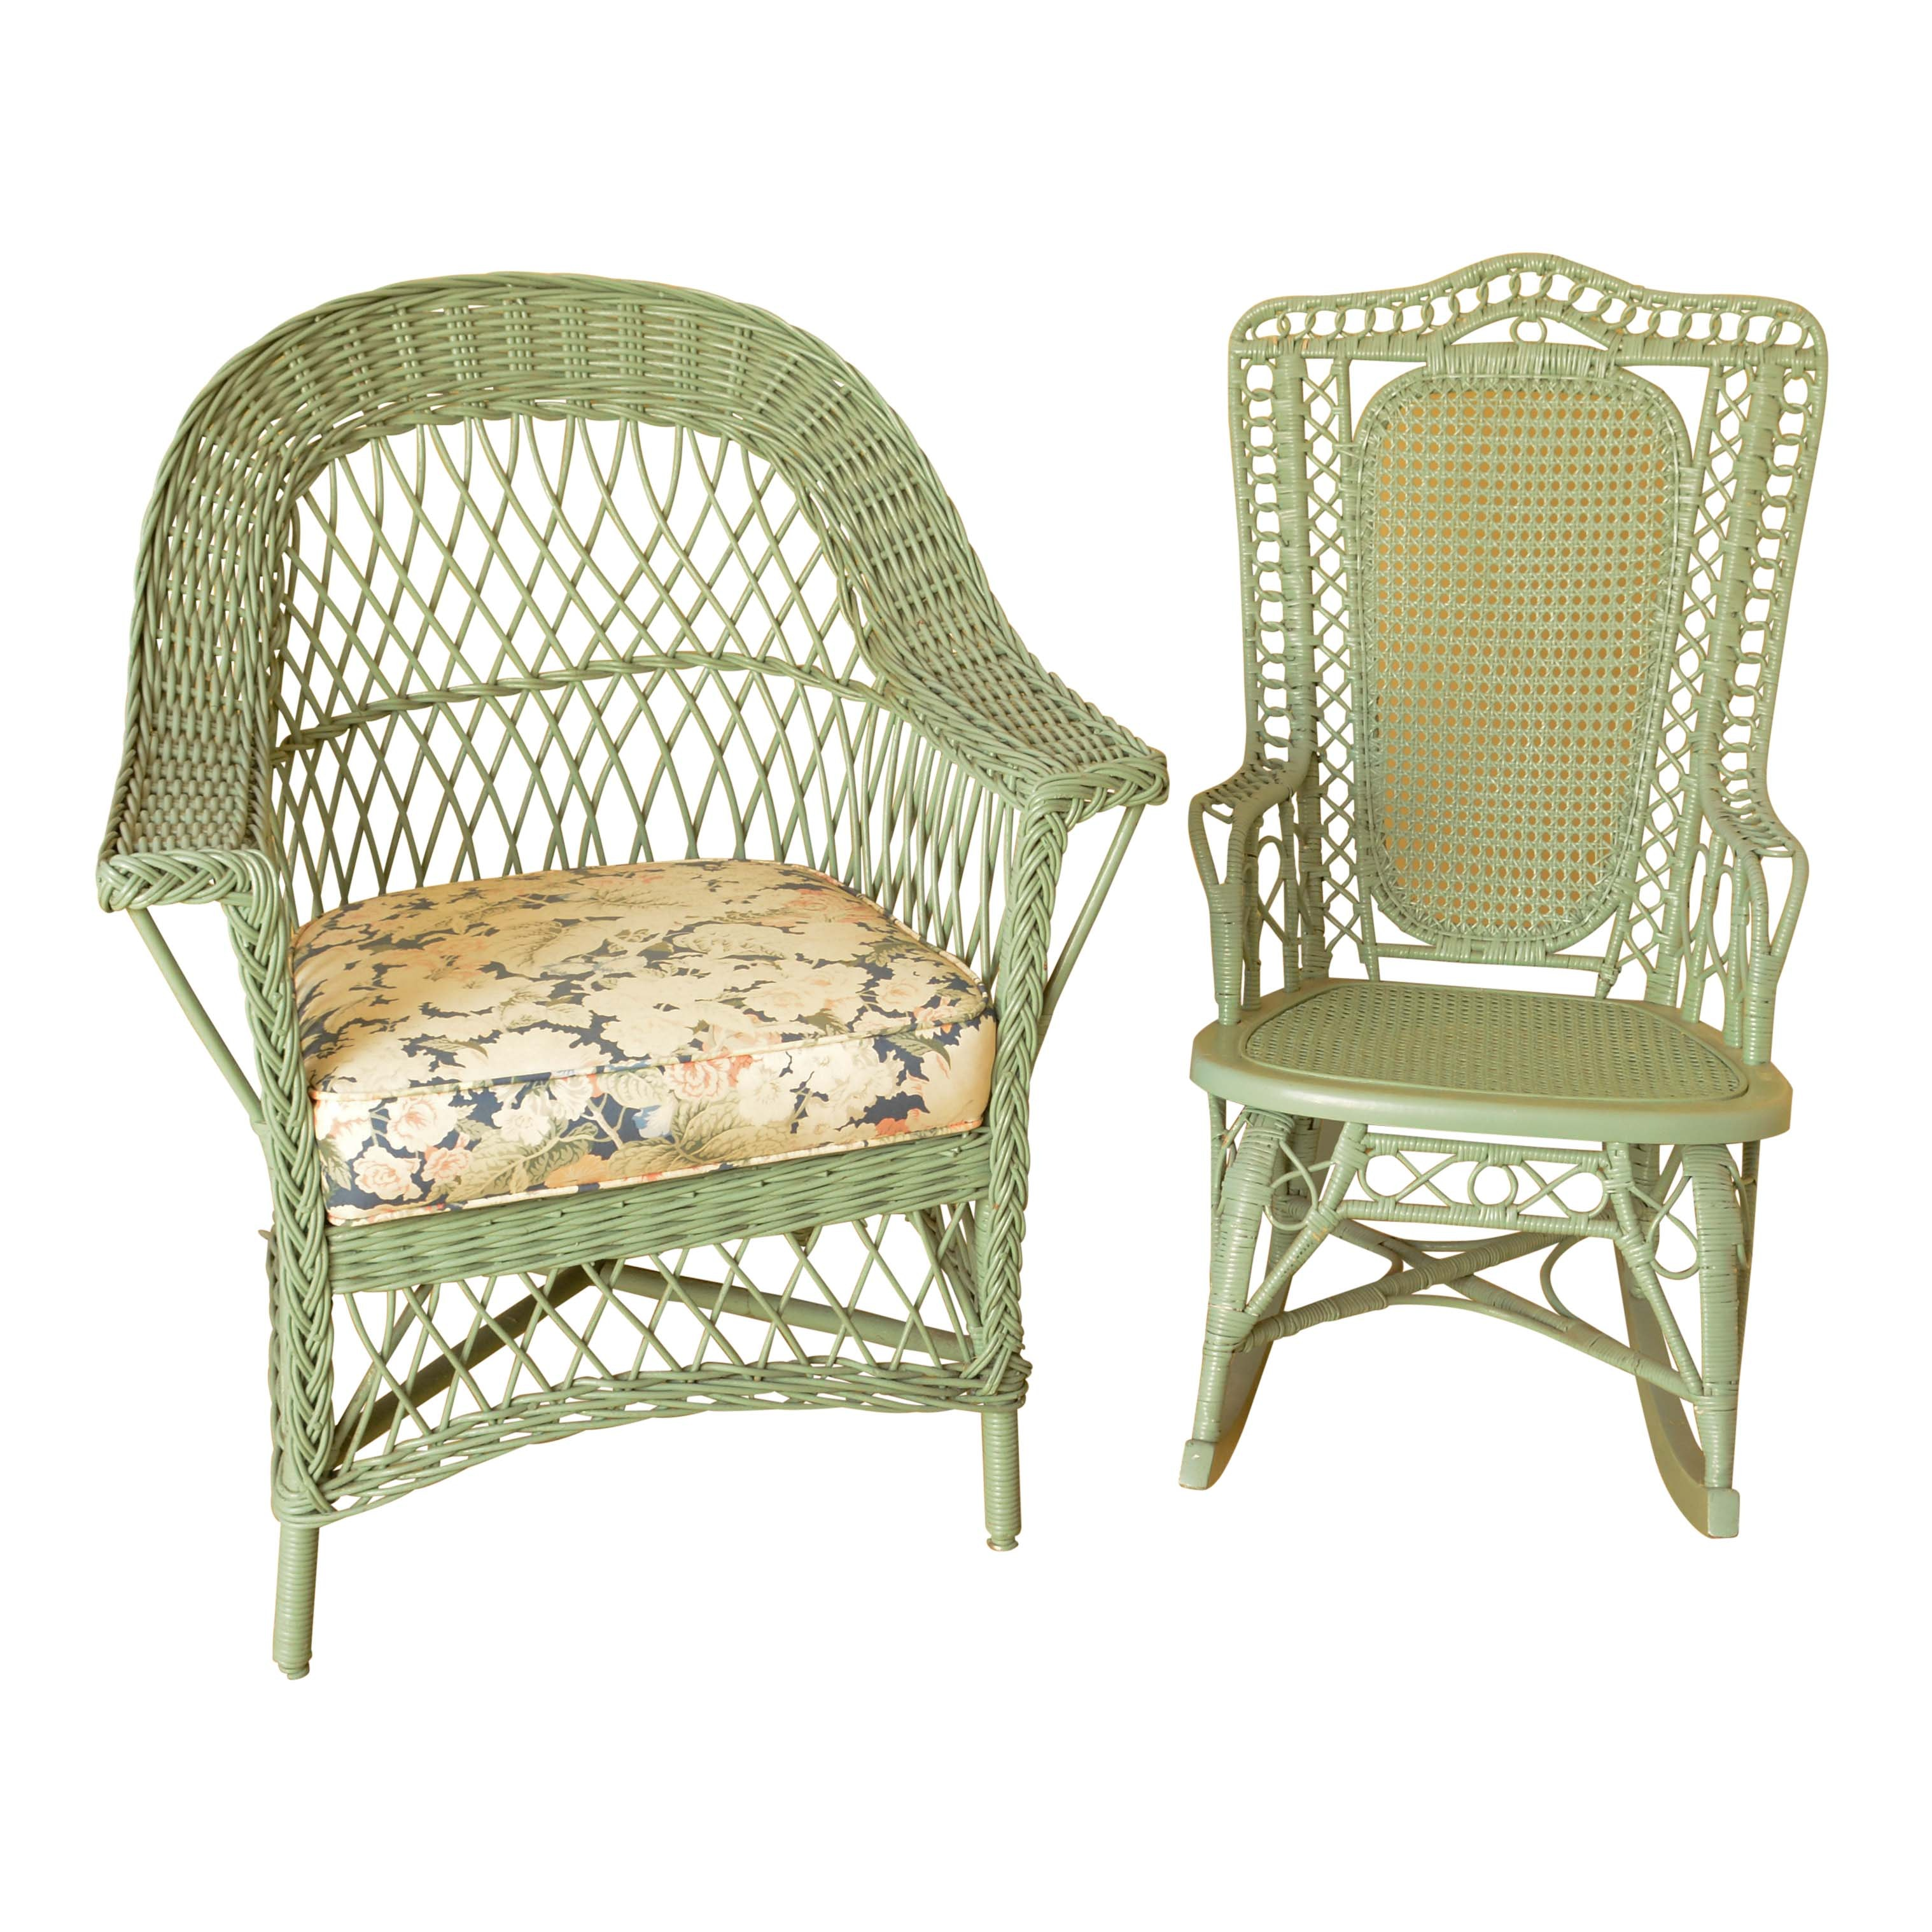 Green Painted Wicker Rocking Chair and Armchair